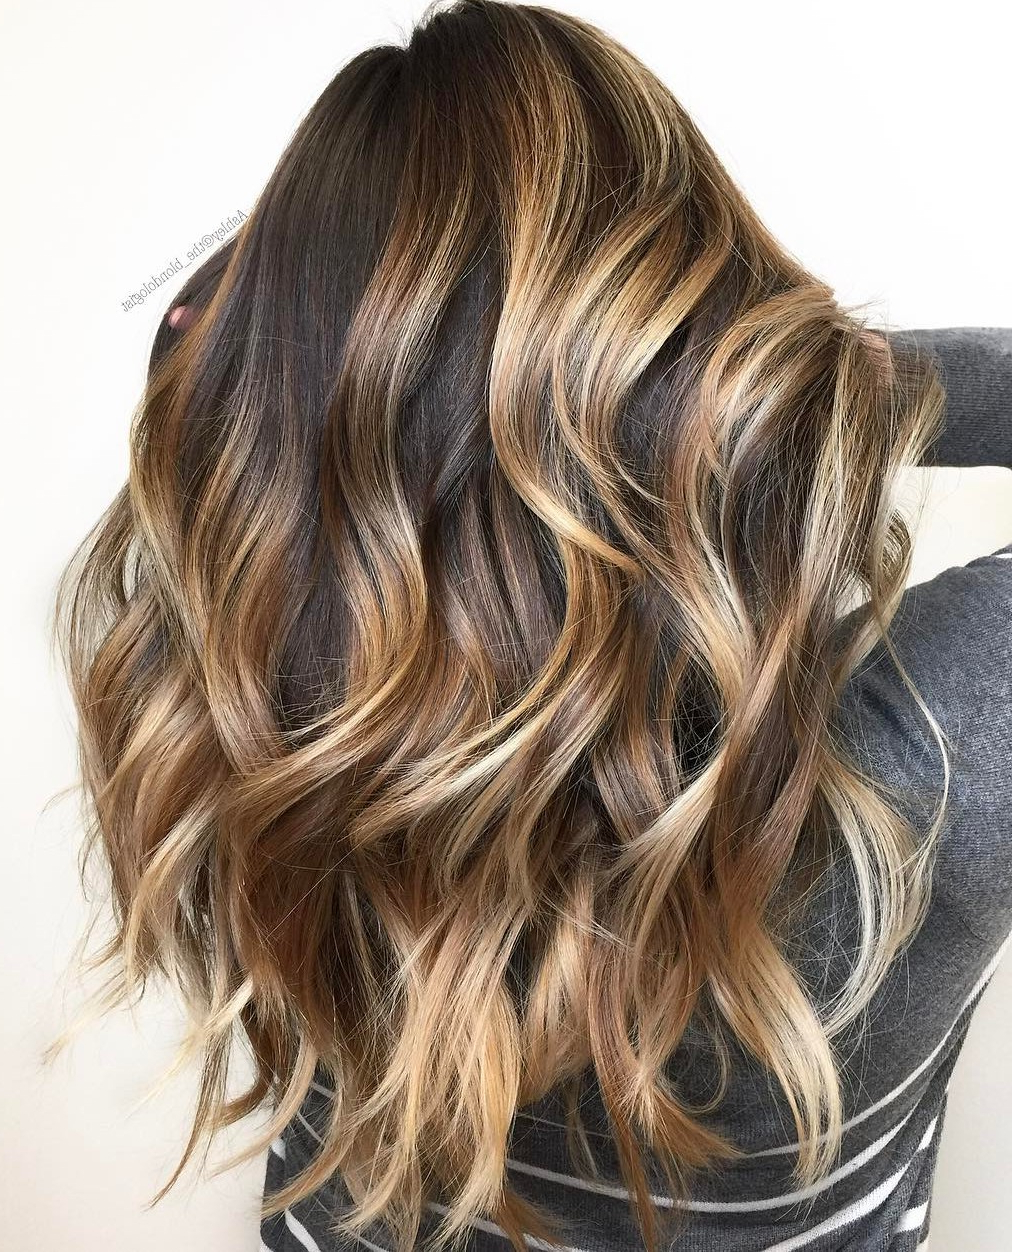 20 Head Turning Haircuts And Hairstyles For Long Thick Hair With Newest Mid Back Brown U Shaped Haircuts With Swoopy Layers (Gallery 6 of 20)